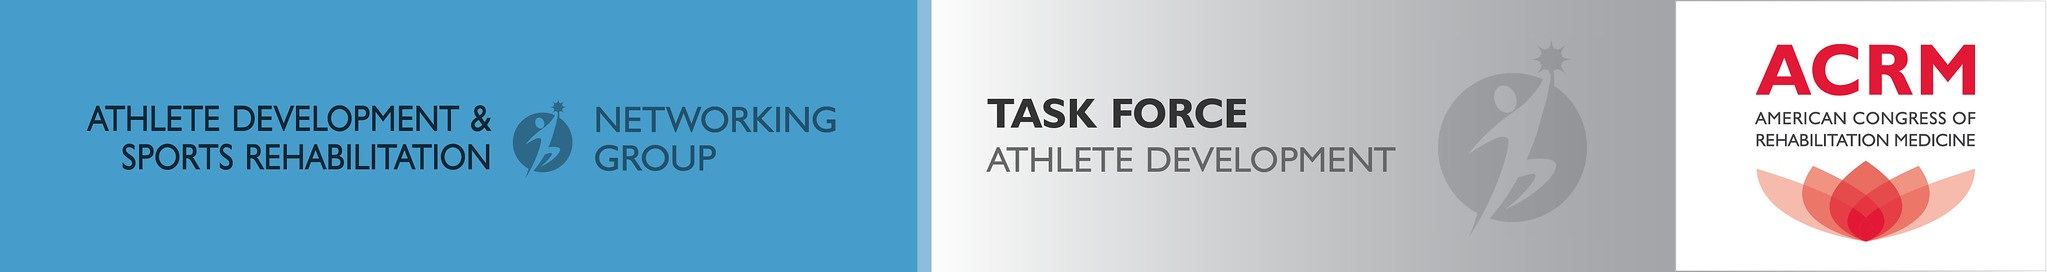 ADSRNG Athlete Development Task Force header